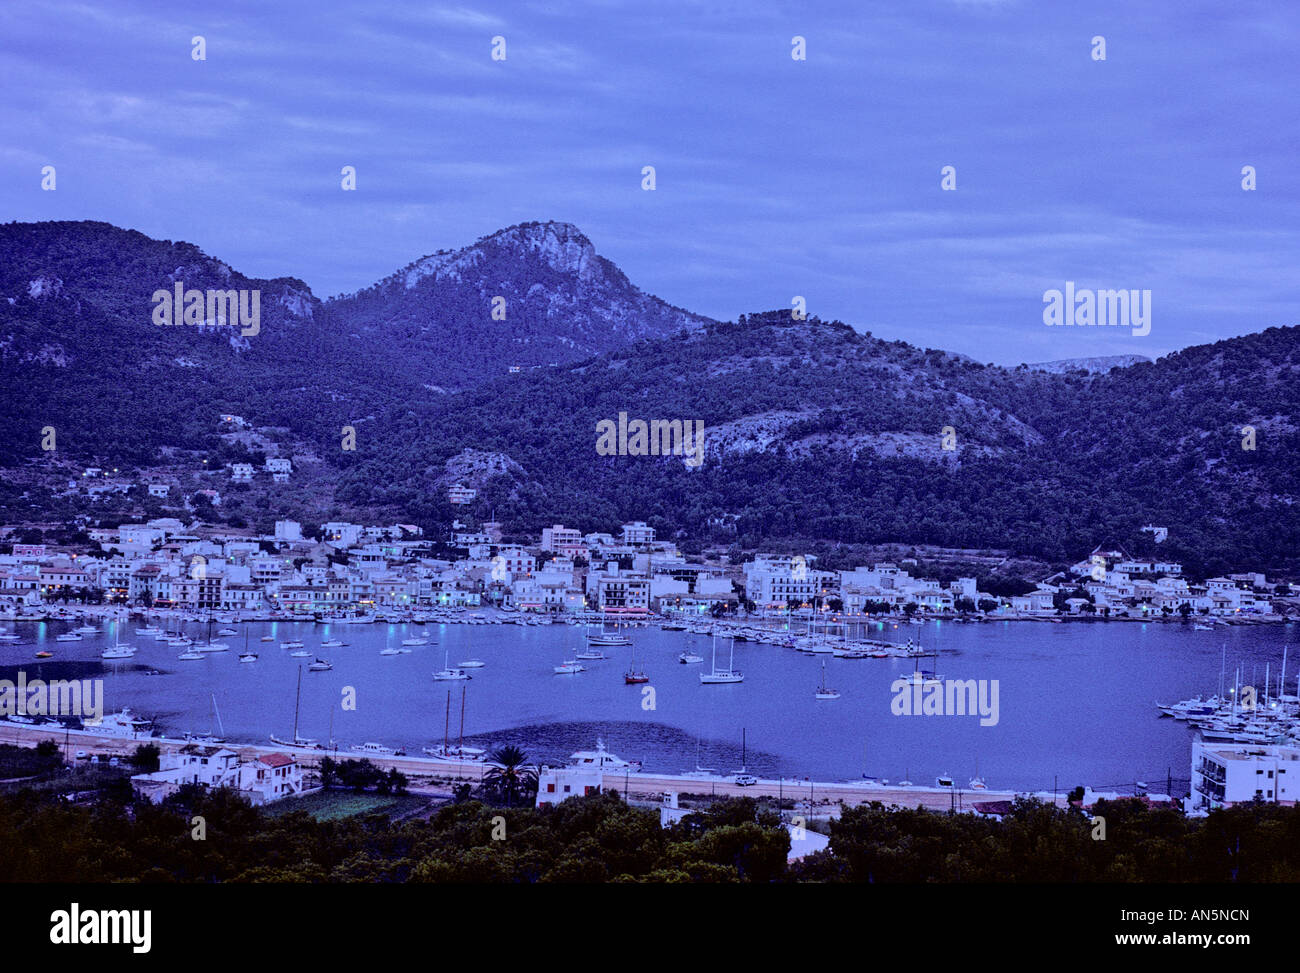 dusk-in-the-fishing-village-of-port-dand